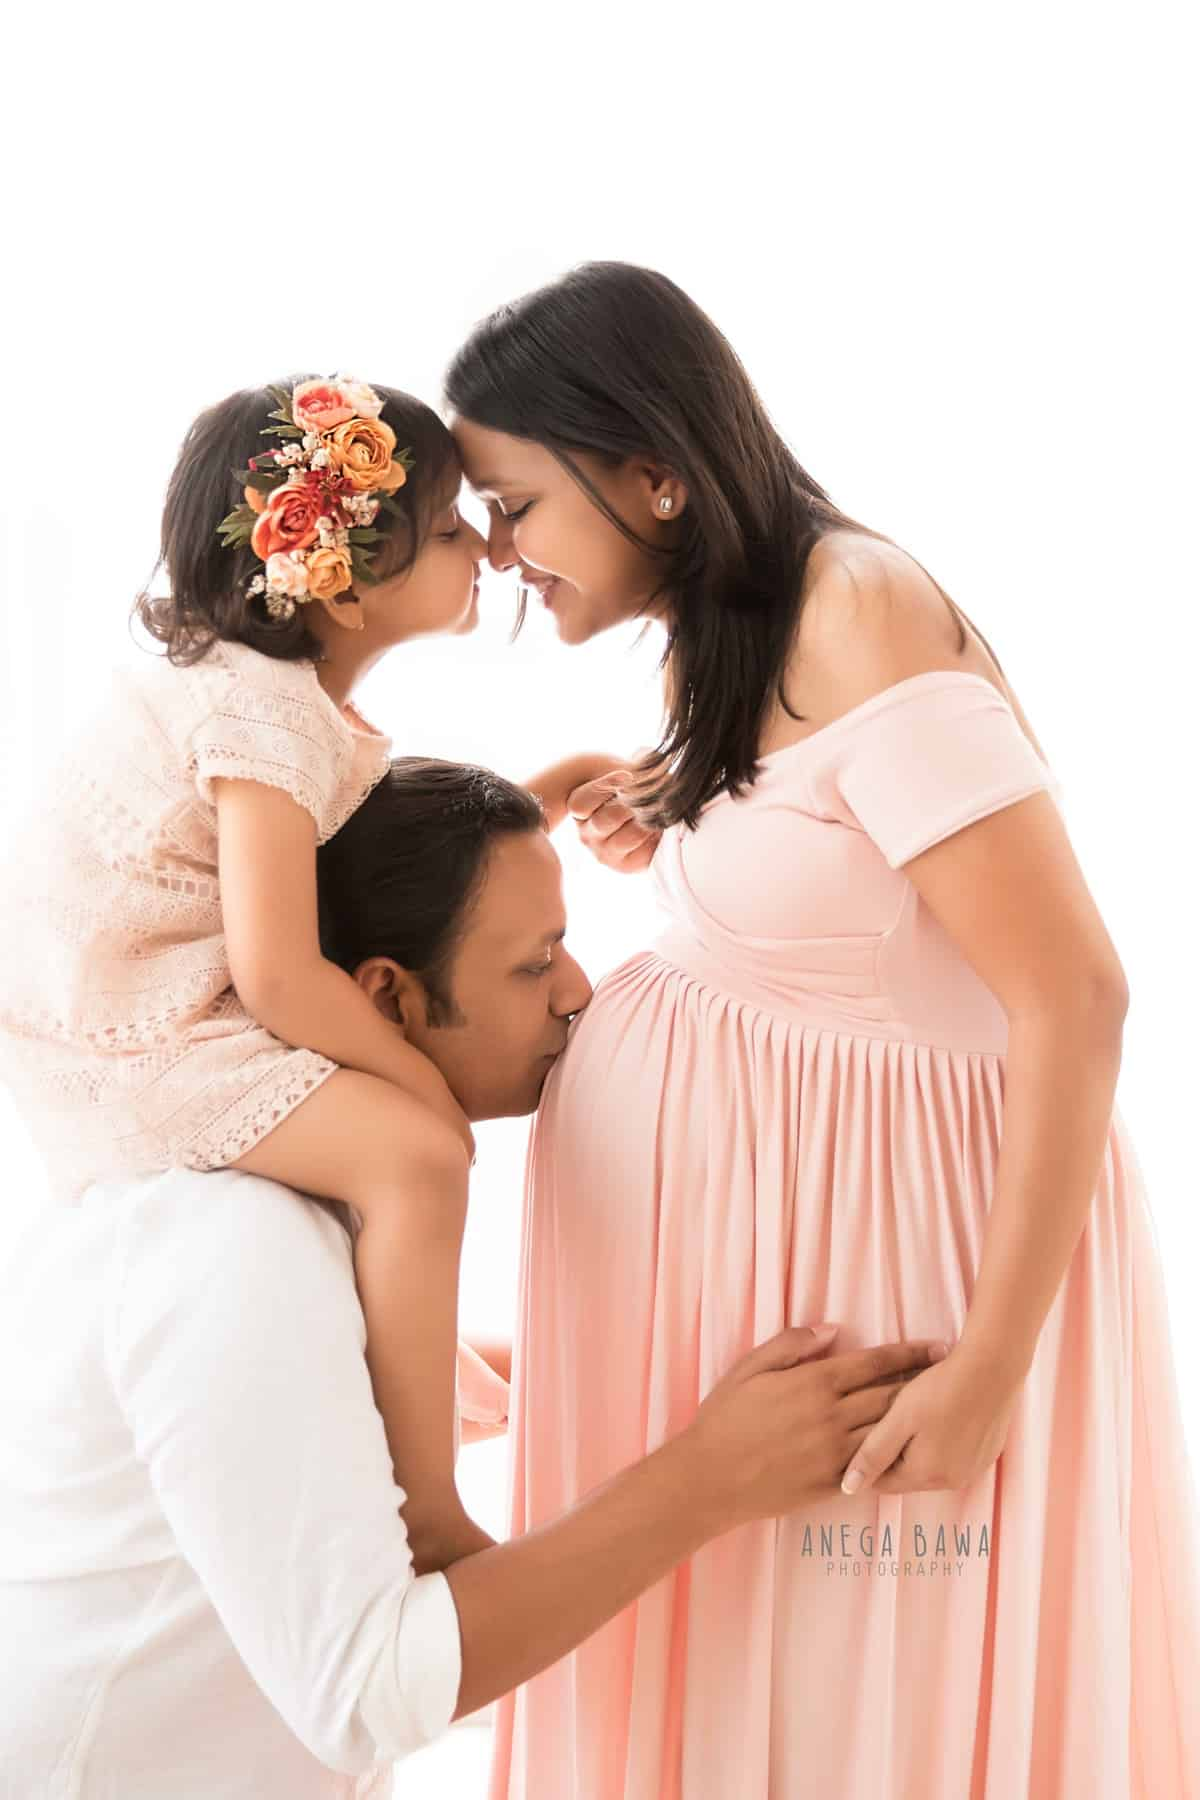 best_pregnancy_photography_delhi_gurgaon_family_pink_outfit_white_background_anega_bawa